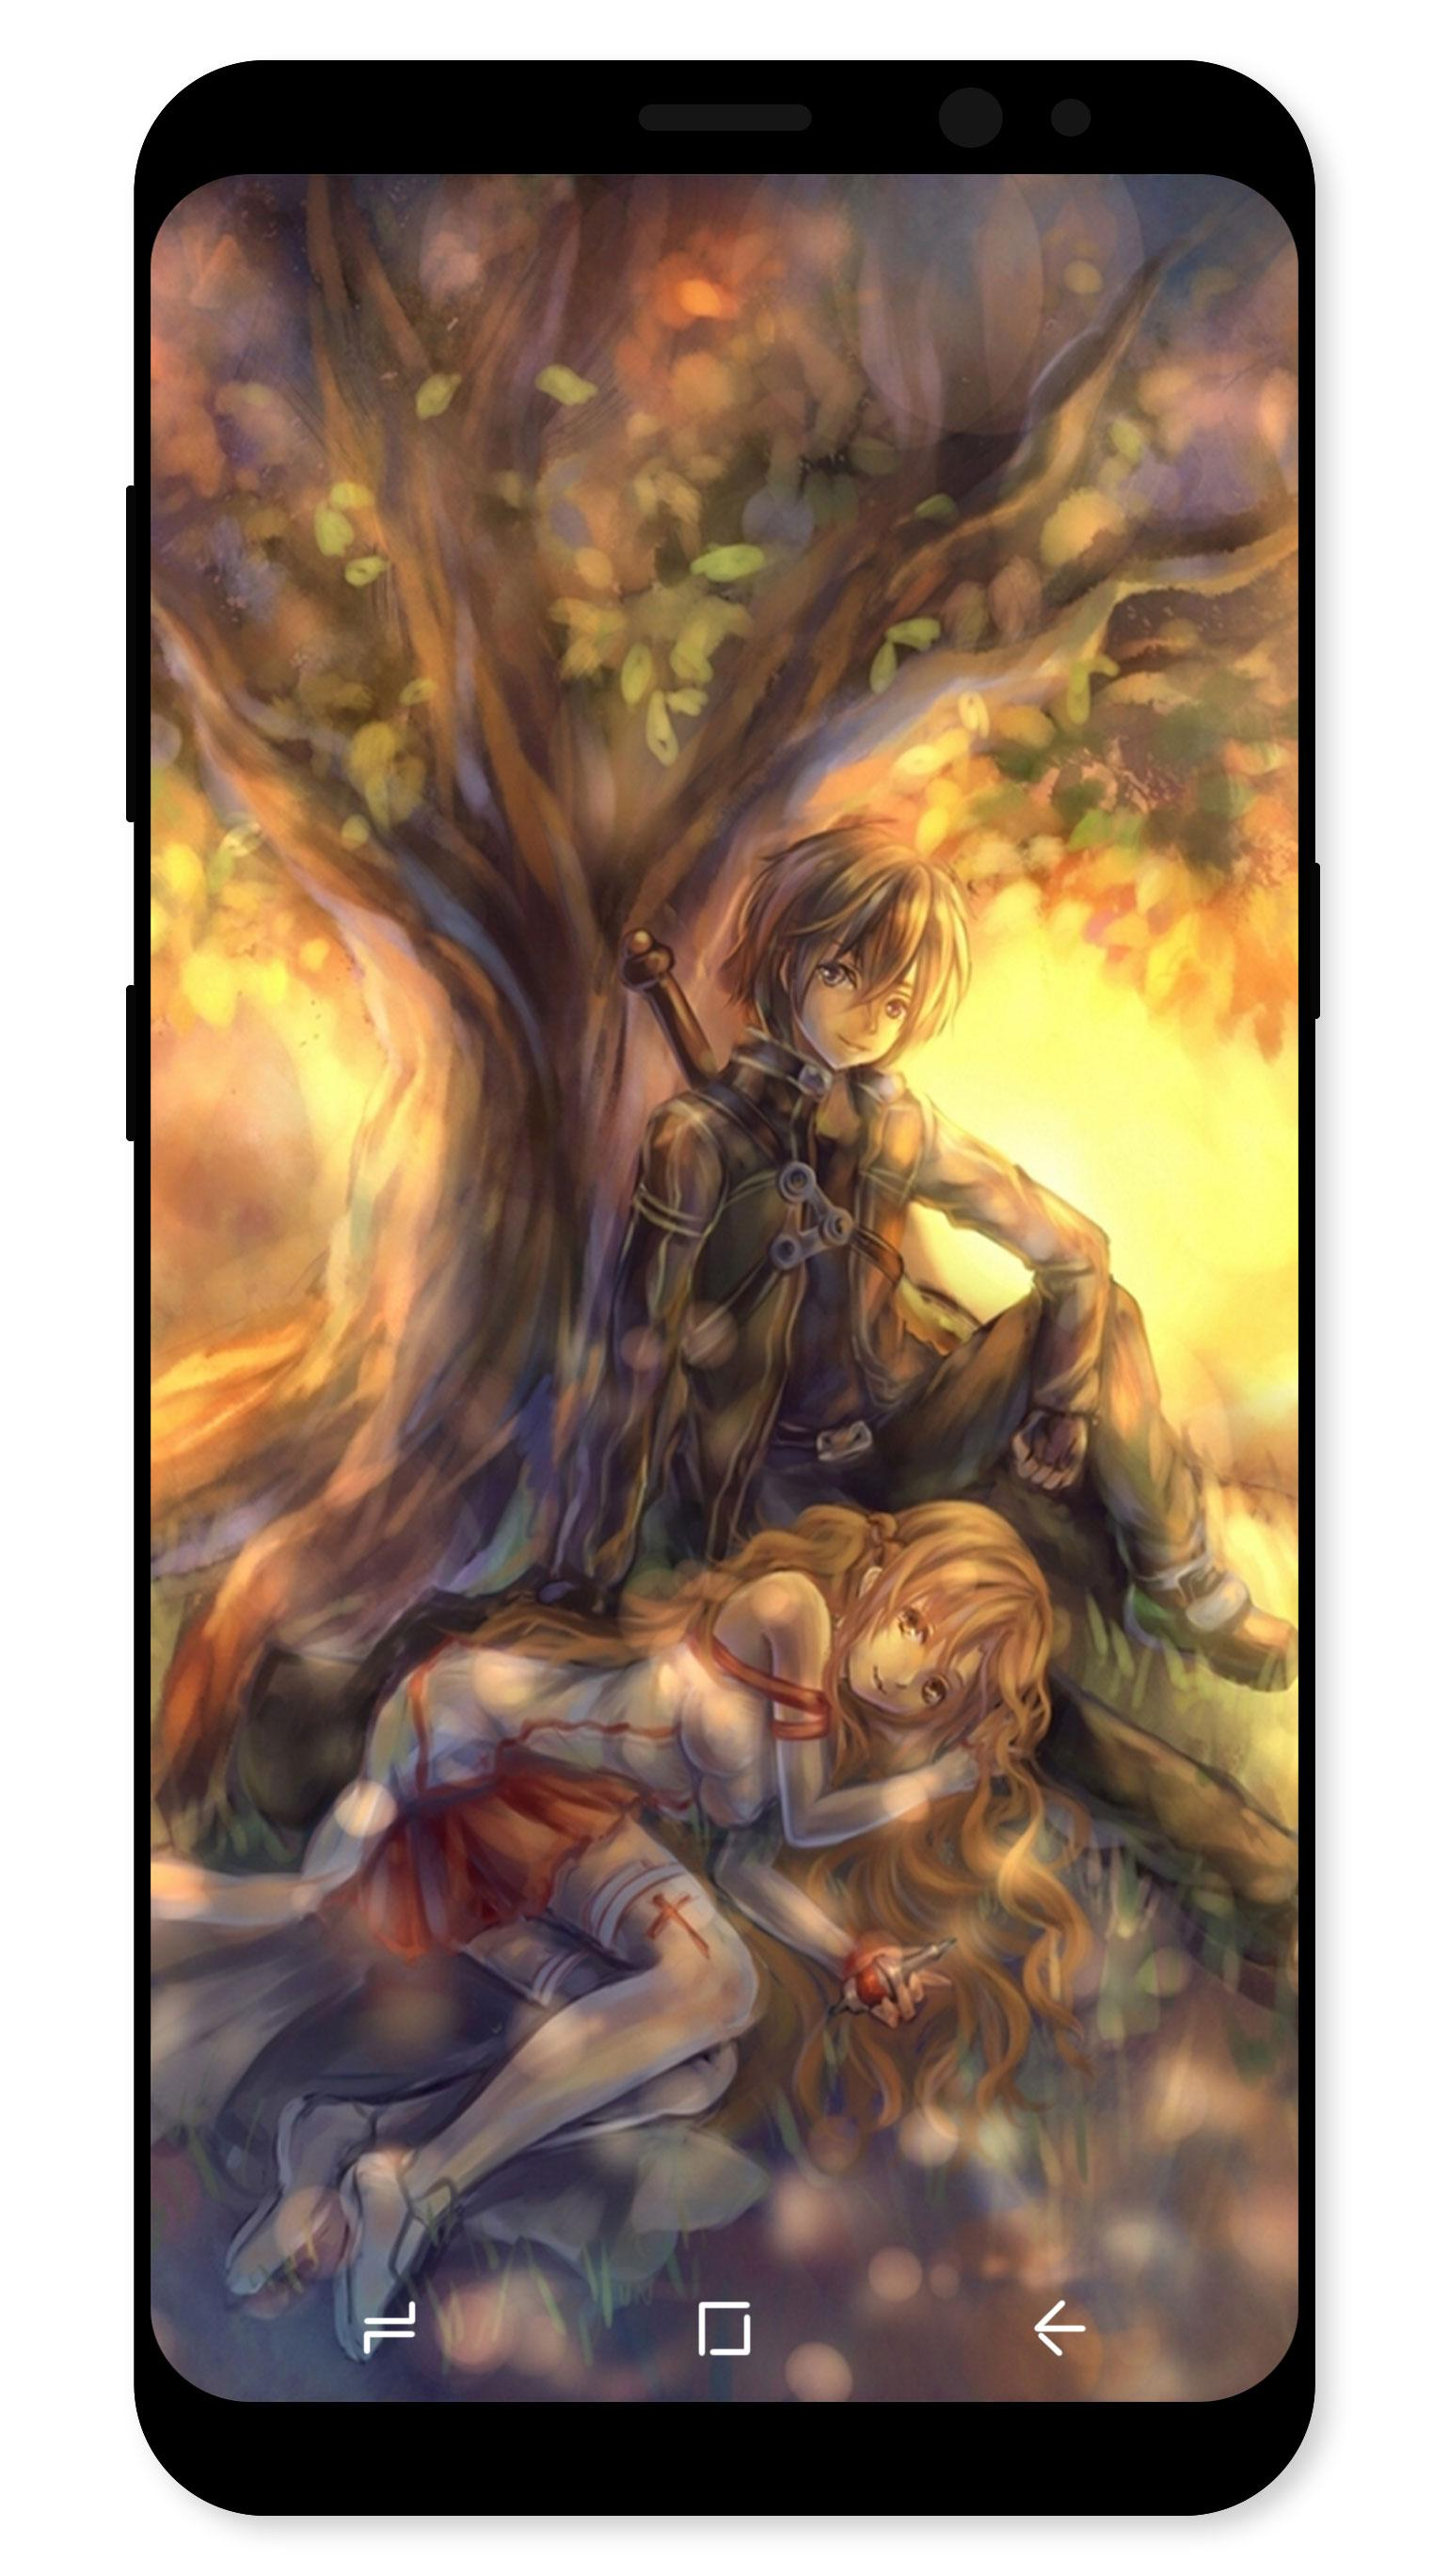 Sword Art Online Wallpapers Hd For Android Apk Download